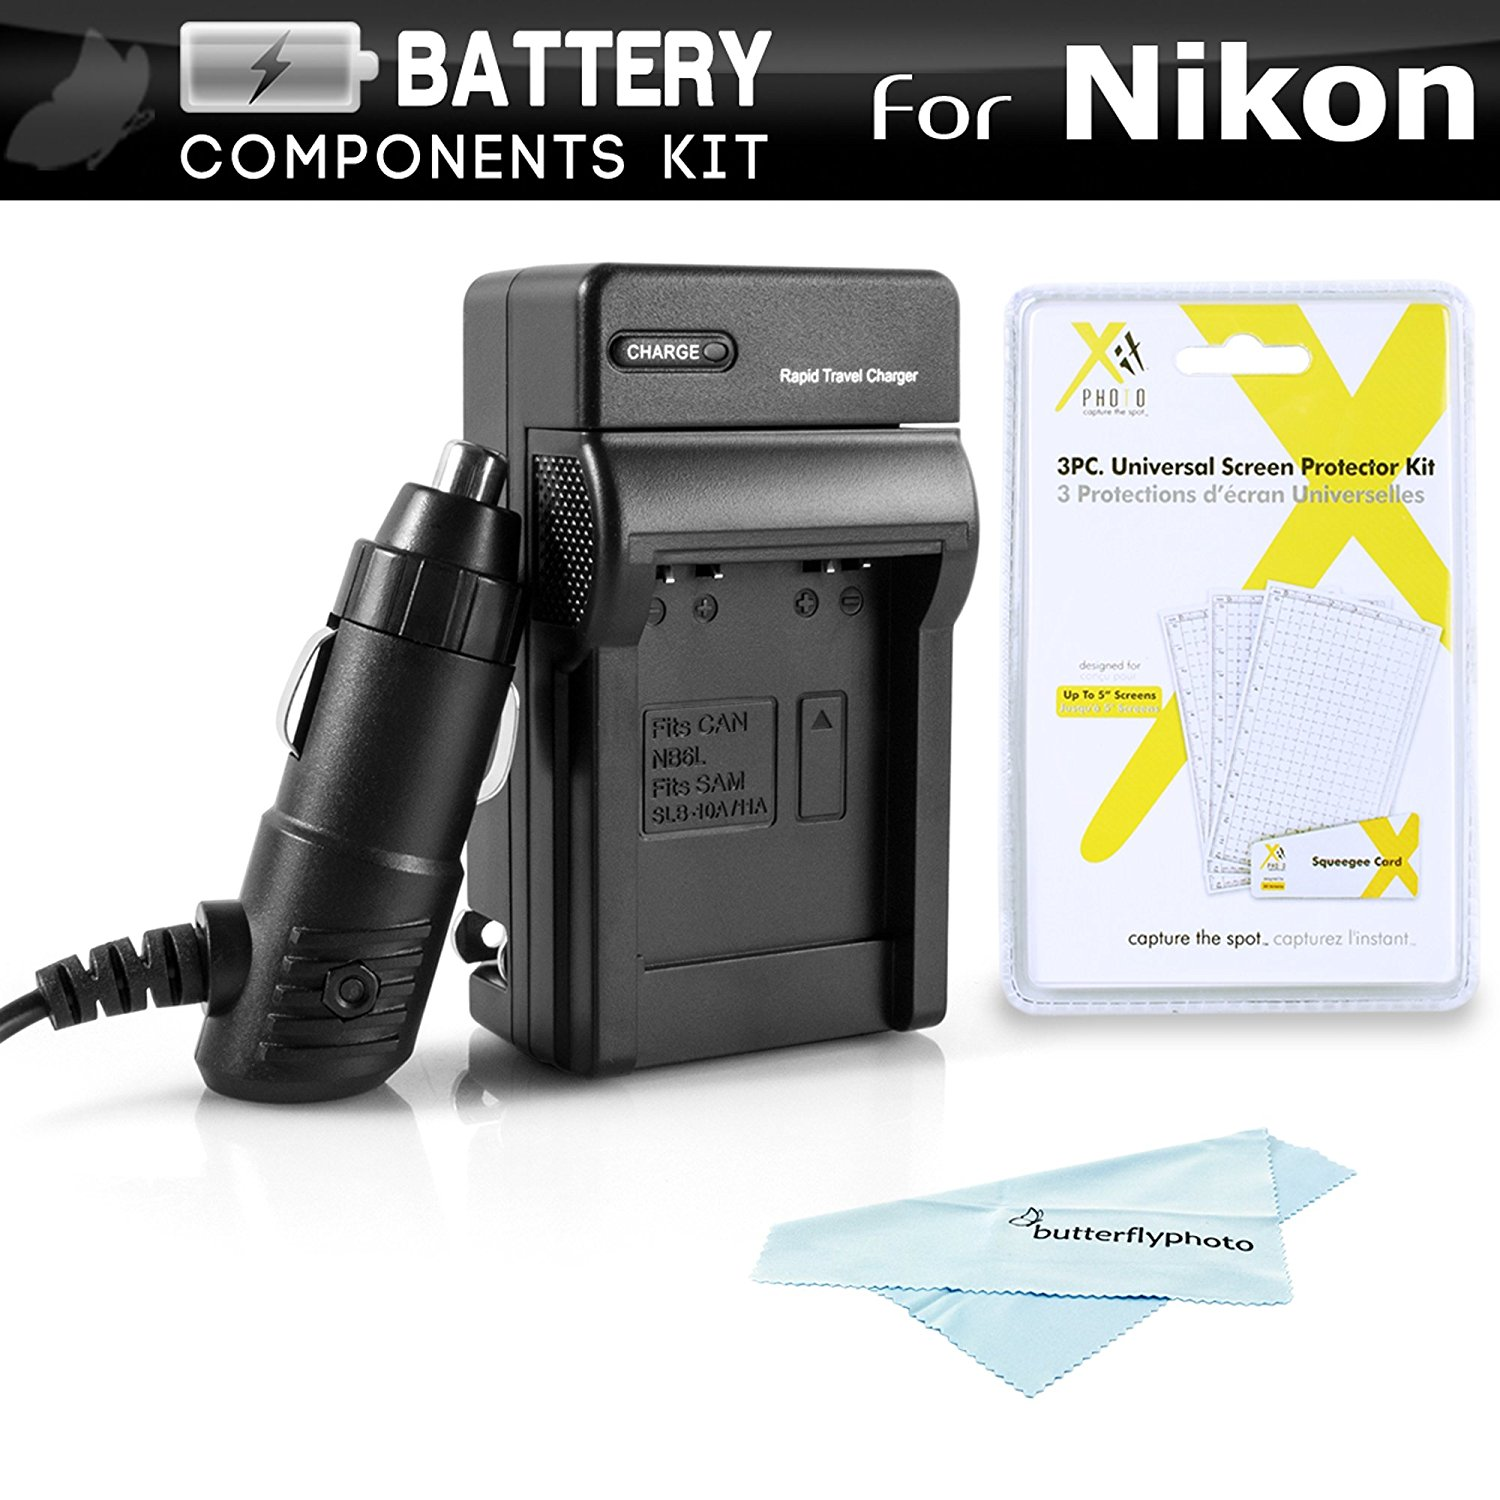 Battery Charger Kit For Nikon COOLPIX S3700, S2900, S33, S7000, S6900, S4300, S6400, S5200, S6500, S3200, S4200, S32 Digital Camera Includes Ac/Dc 110/220 Rapid Travel Charger For Nikon EN-EL19 Battery + LCD Screen Protectors + MicroFiber Cloth